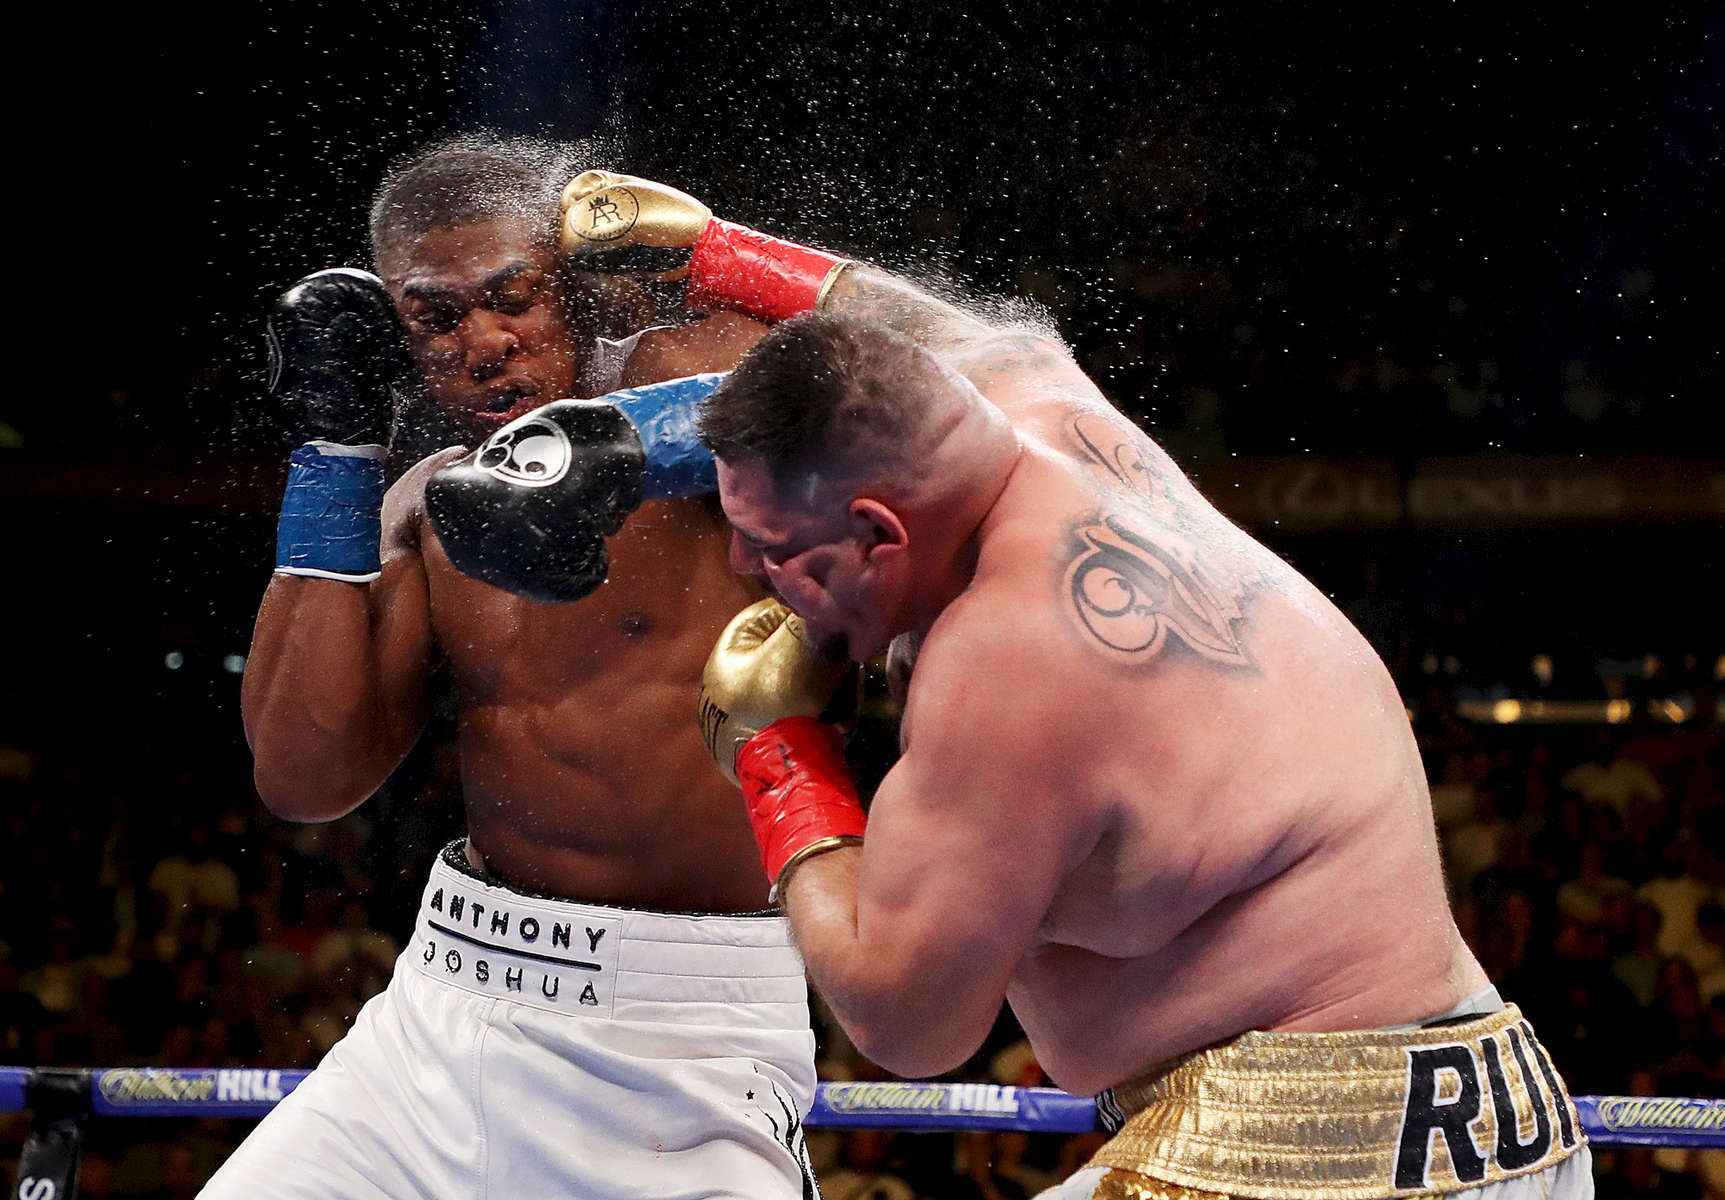 Andy Ruiz Jr  punches Anthony Joshua after their IBF/WBA/WBO heavyweight title fight at Madison Square Garden on June 01, 2019 in New York City.